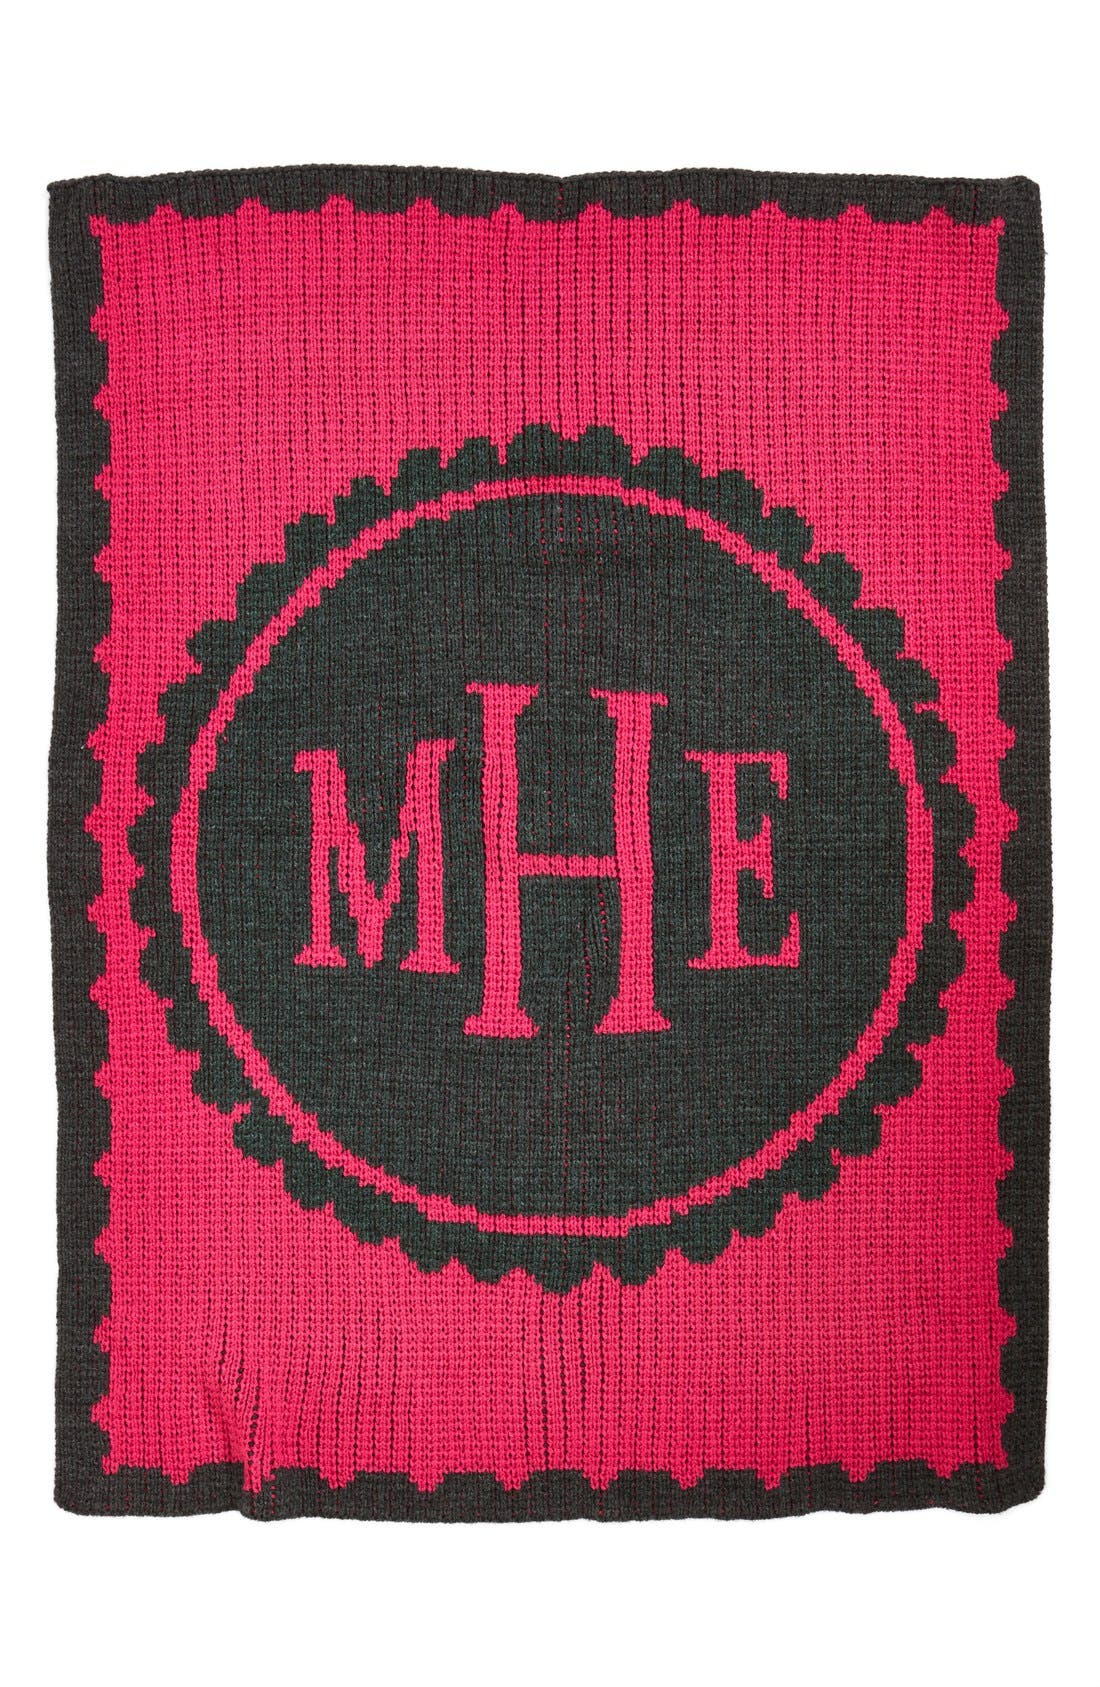 'Scalloped - Large' Personalized Blanket,                             Main thumbnail 1, color,                             FUCHSIA/ CHARCOAL GREY